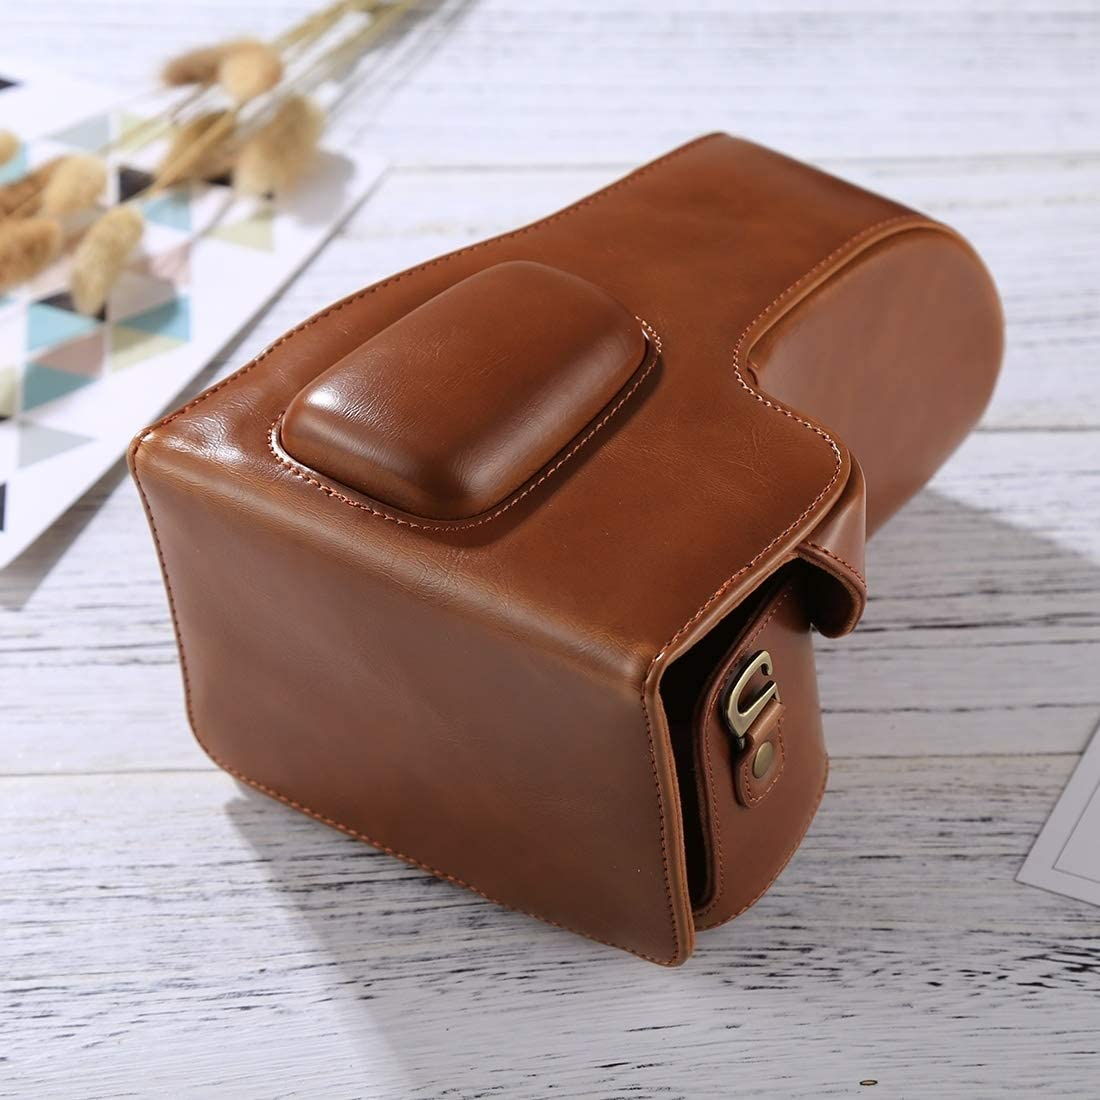 AQcameracell fit for Full Body Camera PU Leather Case Bag for Nikon D5300 // D5200 // D5100 Color : Brown 18-55mm // 18-105mm // 18-140mm Lens Black